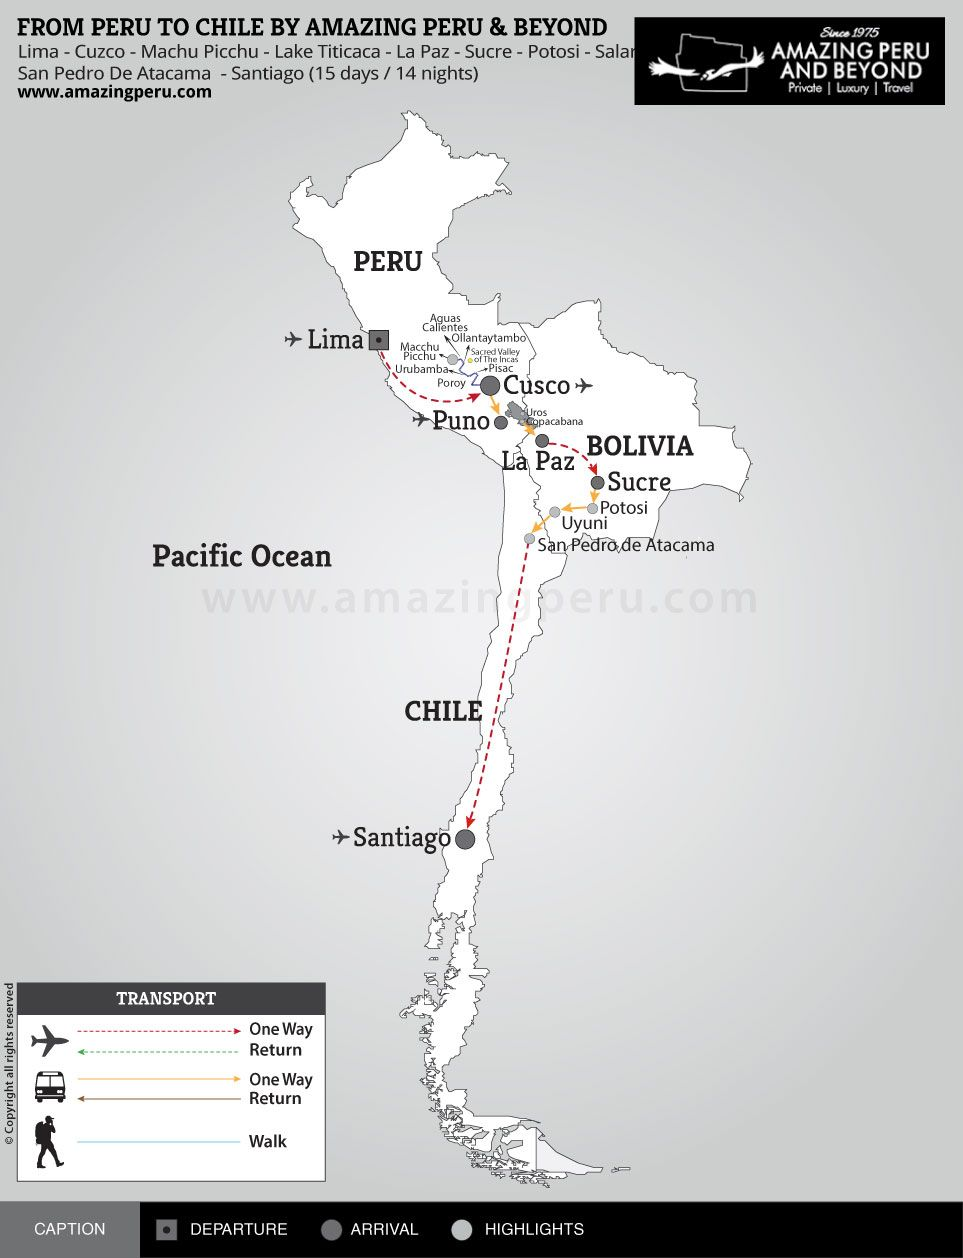 From Peru to Chile by Amazing Peru & Beyond - 15 days / 14 nights.